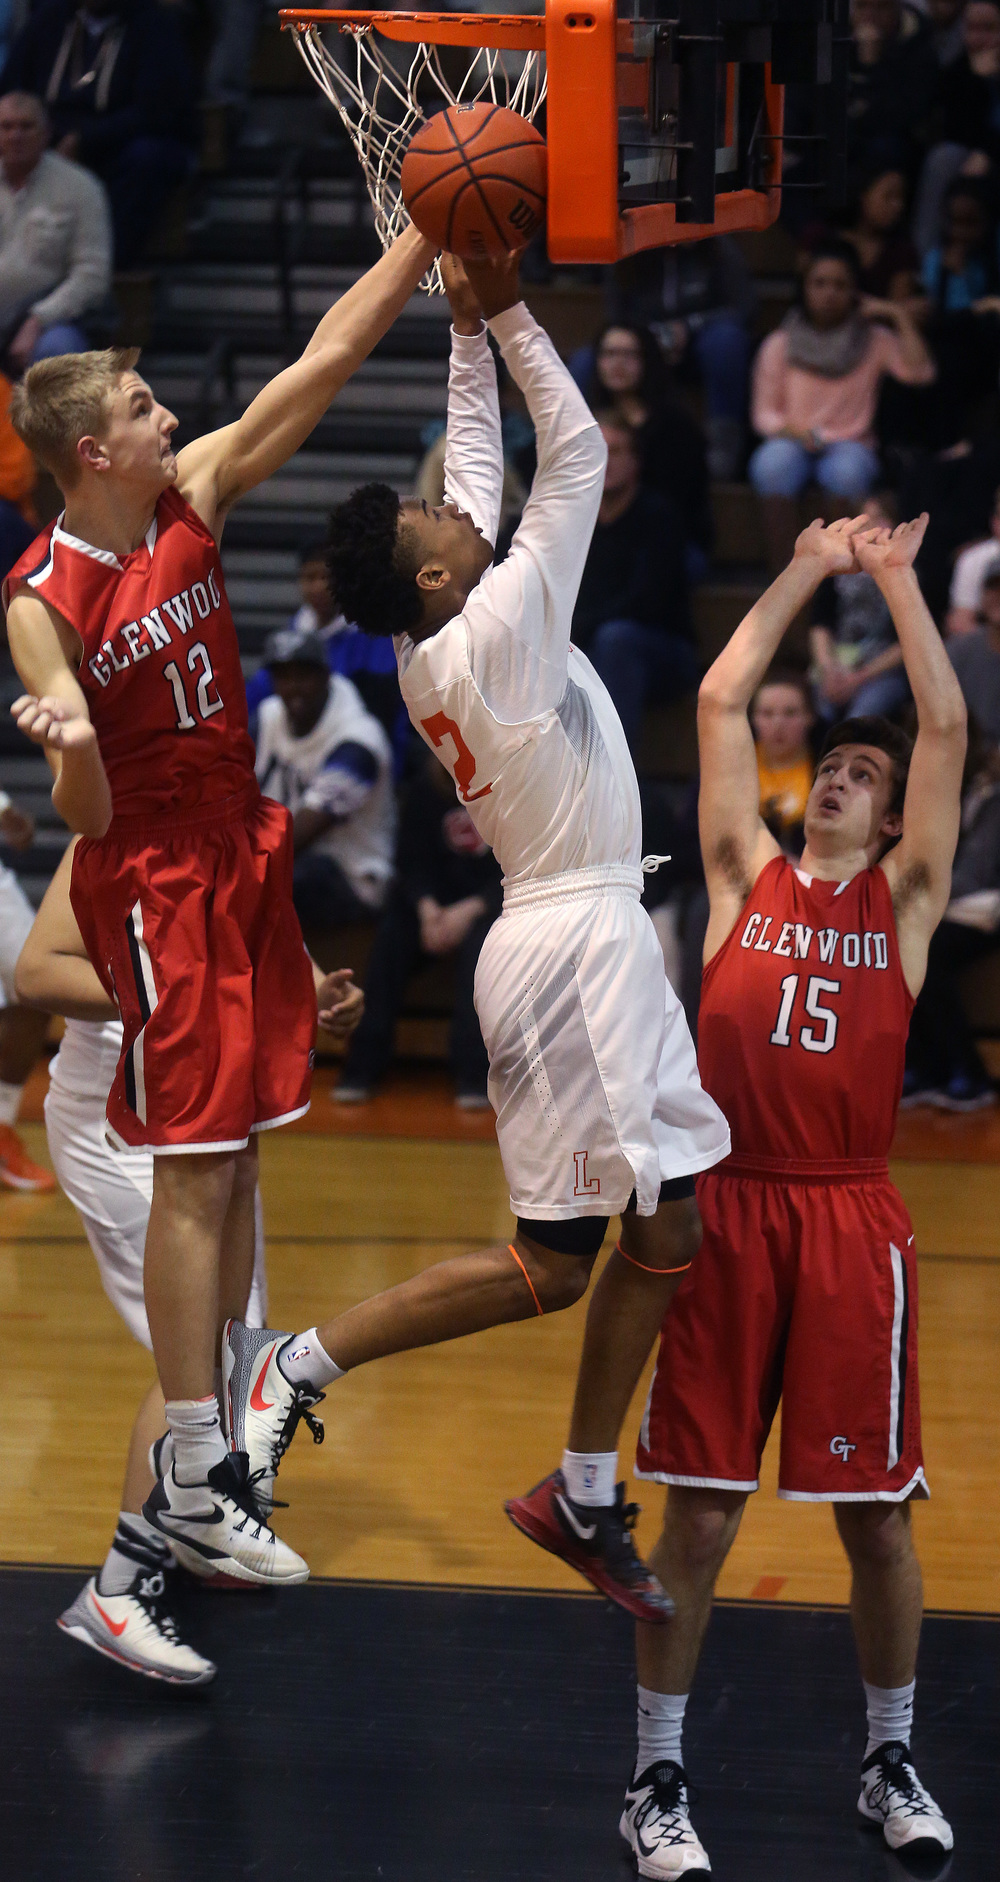 Lanphier's Cardell McGee has his shot blocked by Glenwood's Karson Aherin while Glenwood player Joel Alexander also defends at right. David Spencer/The State Journal Register